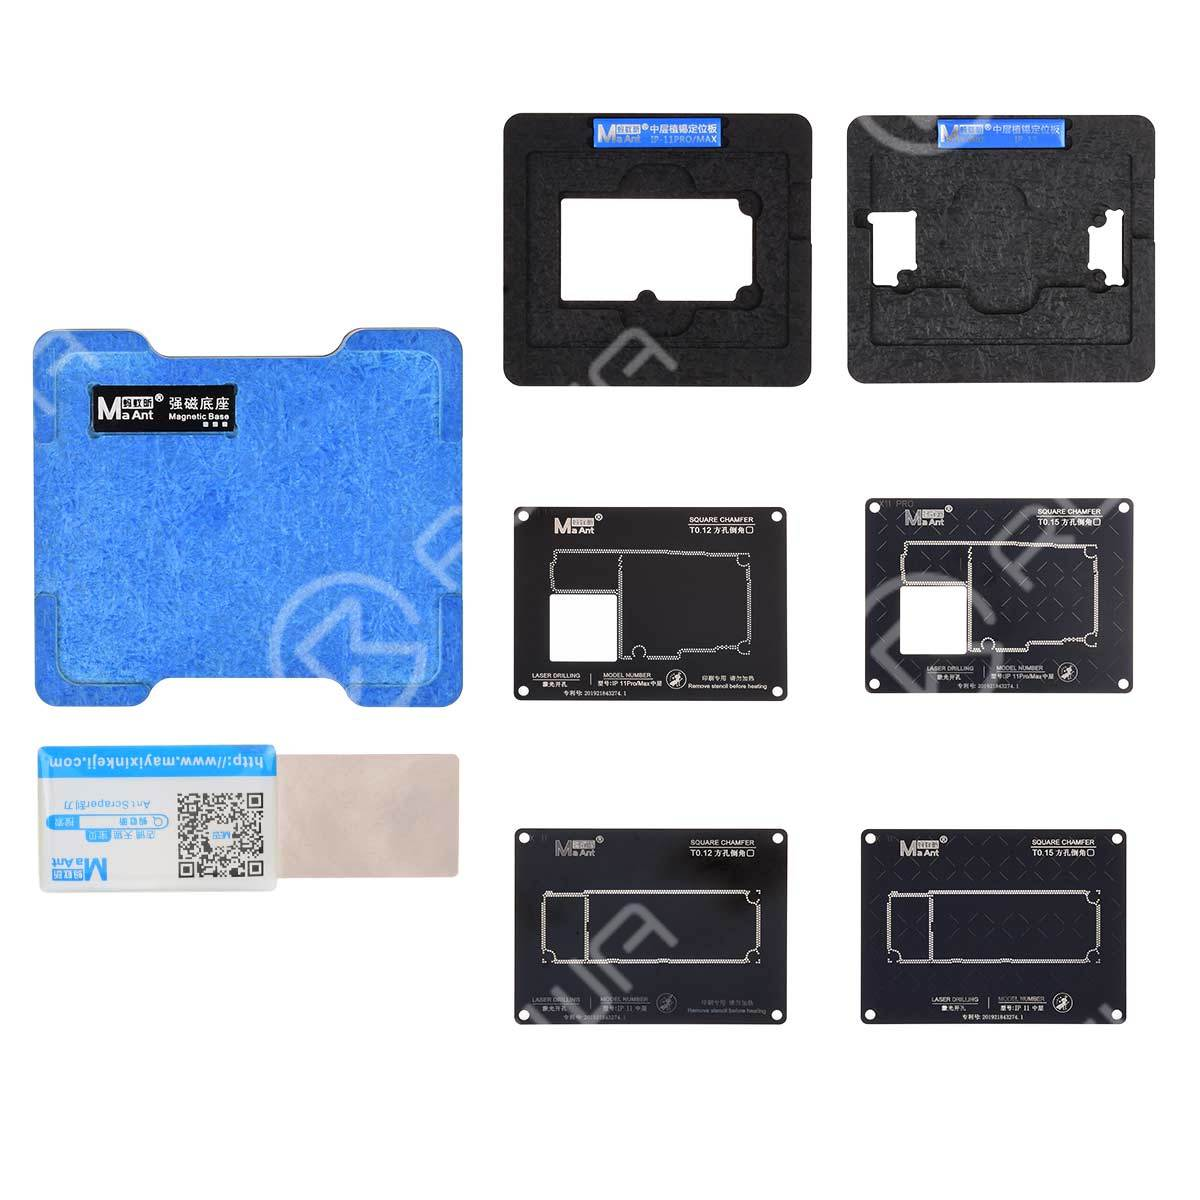 MaAnt Magnetic Middle Frame Reballing Platform For iPhone X-11 Pro Max